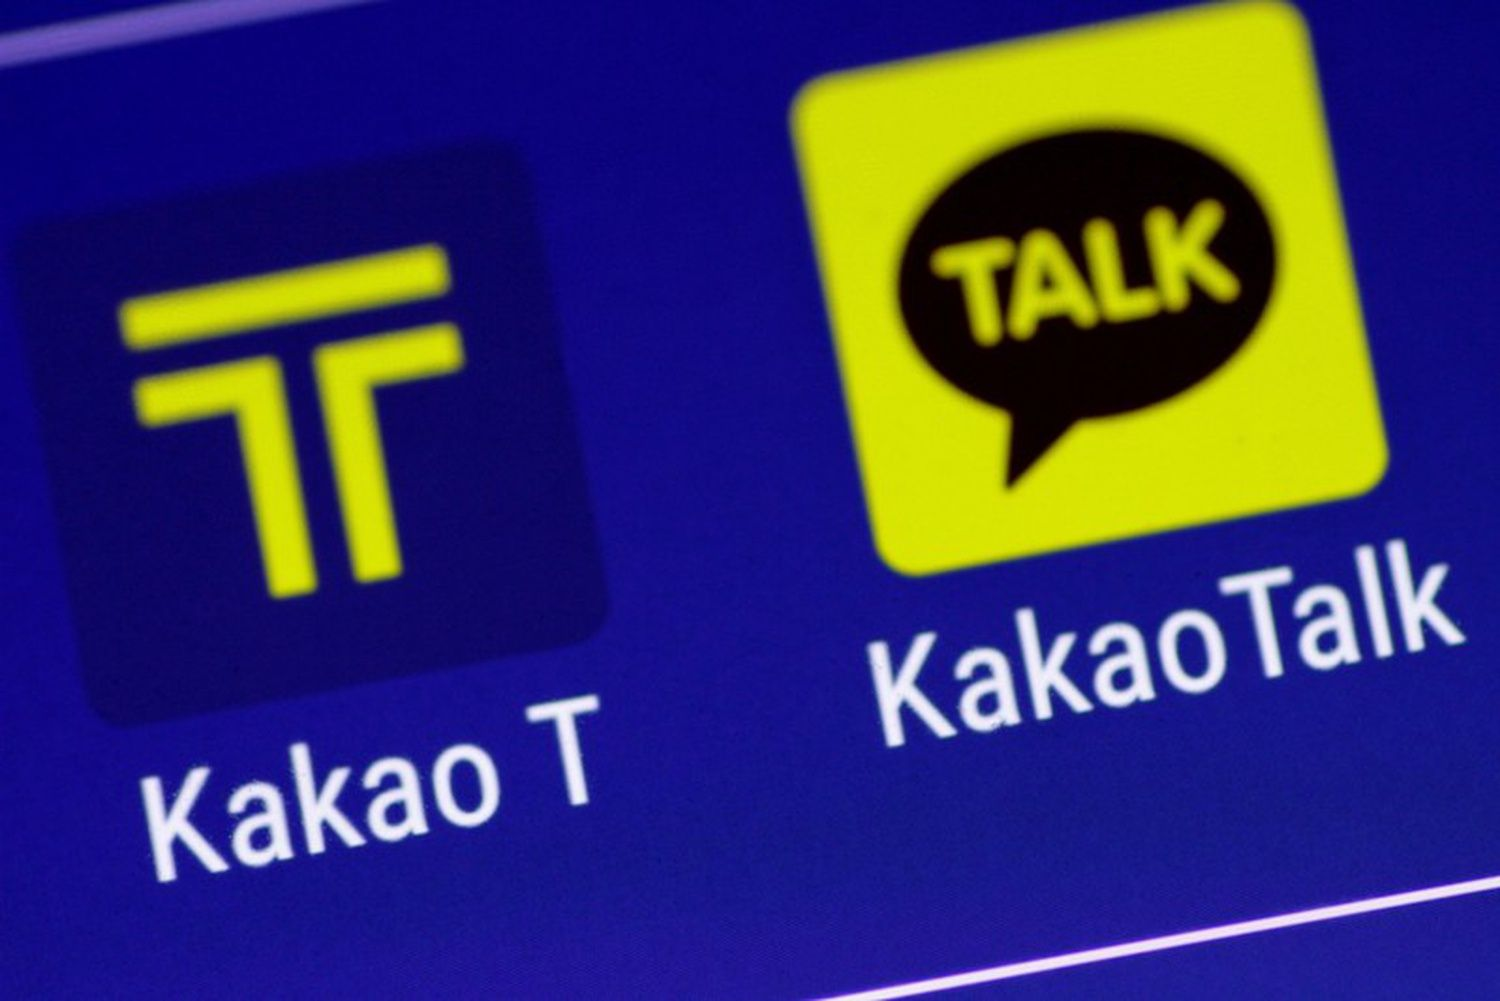 The Kakao messaging application and the Kakao T taxi